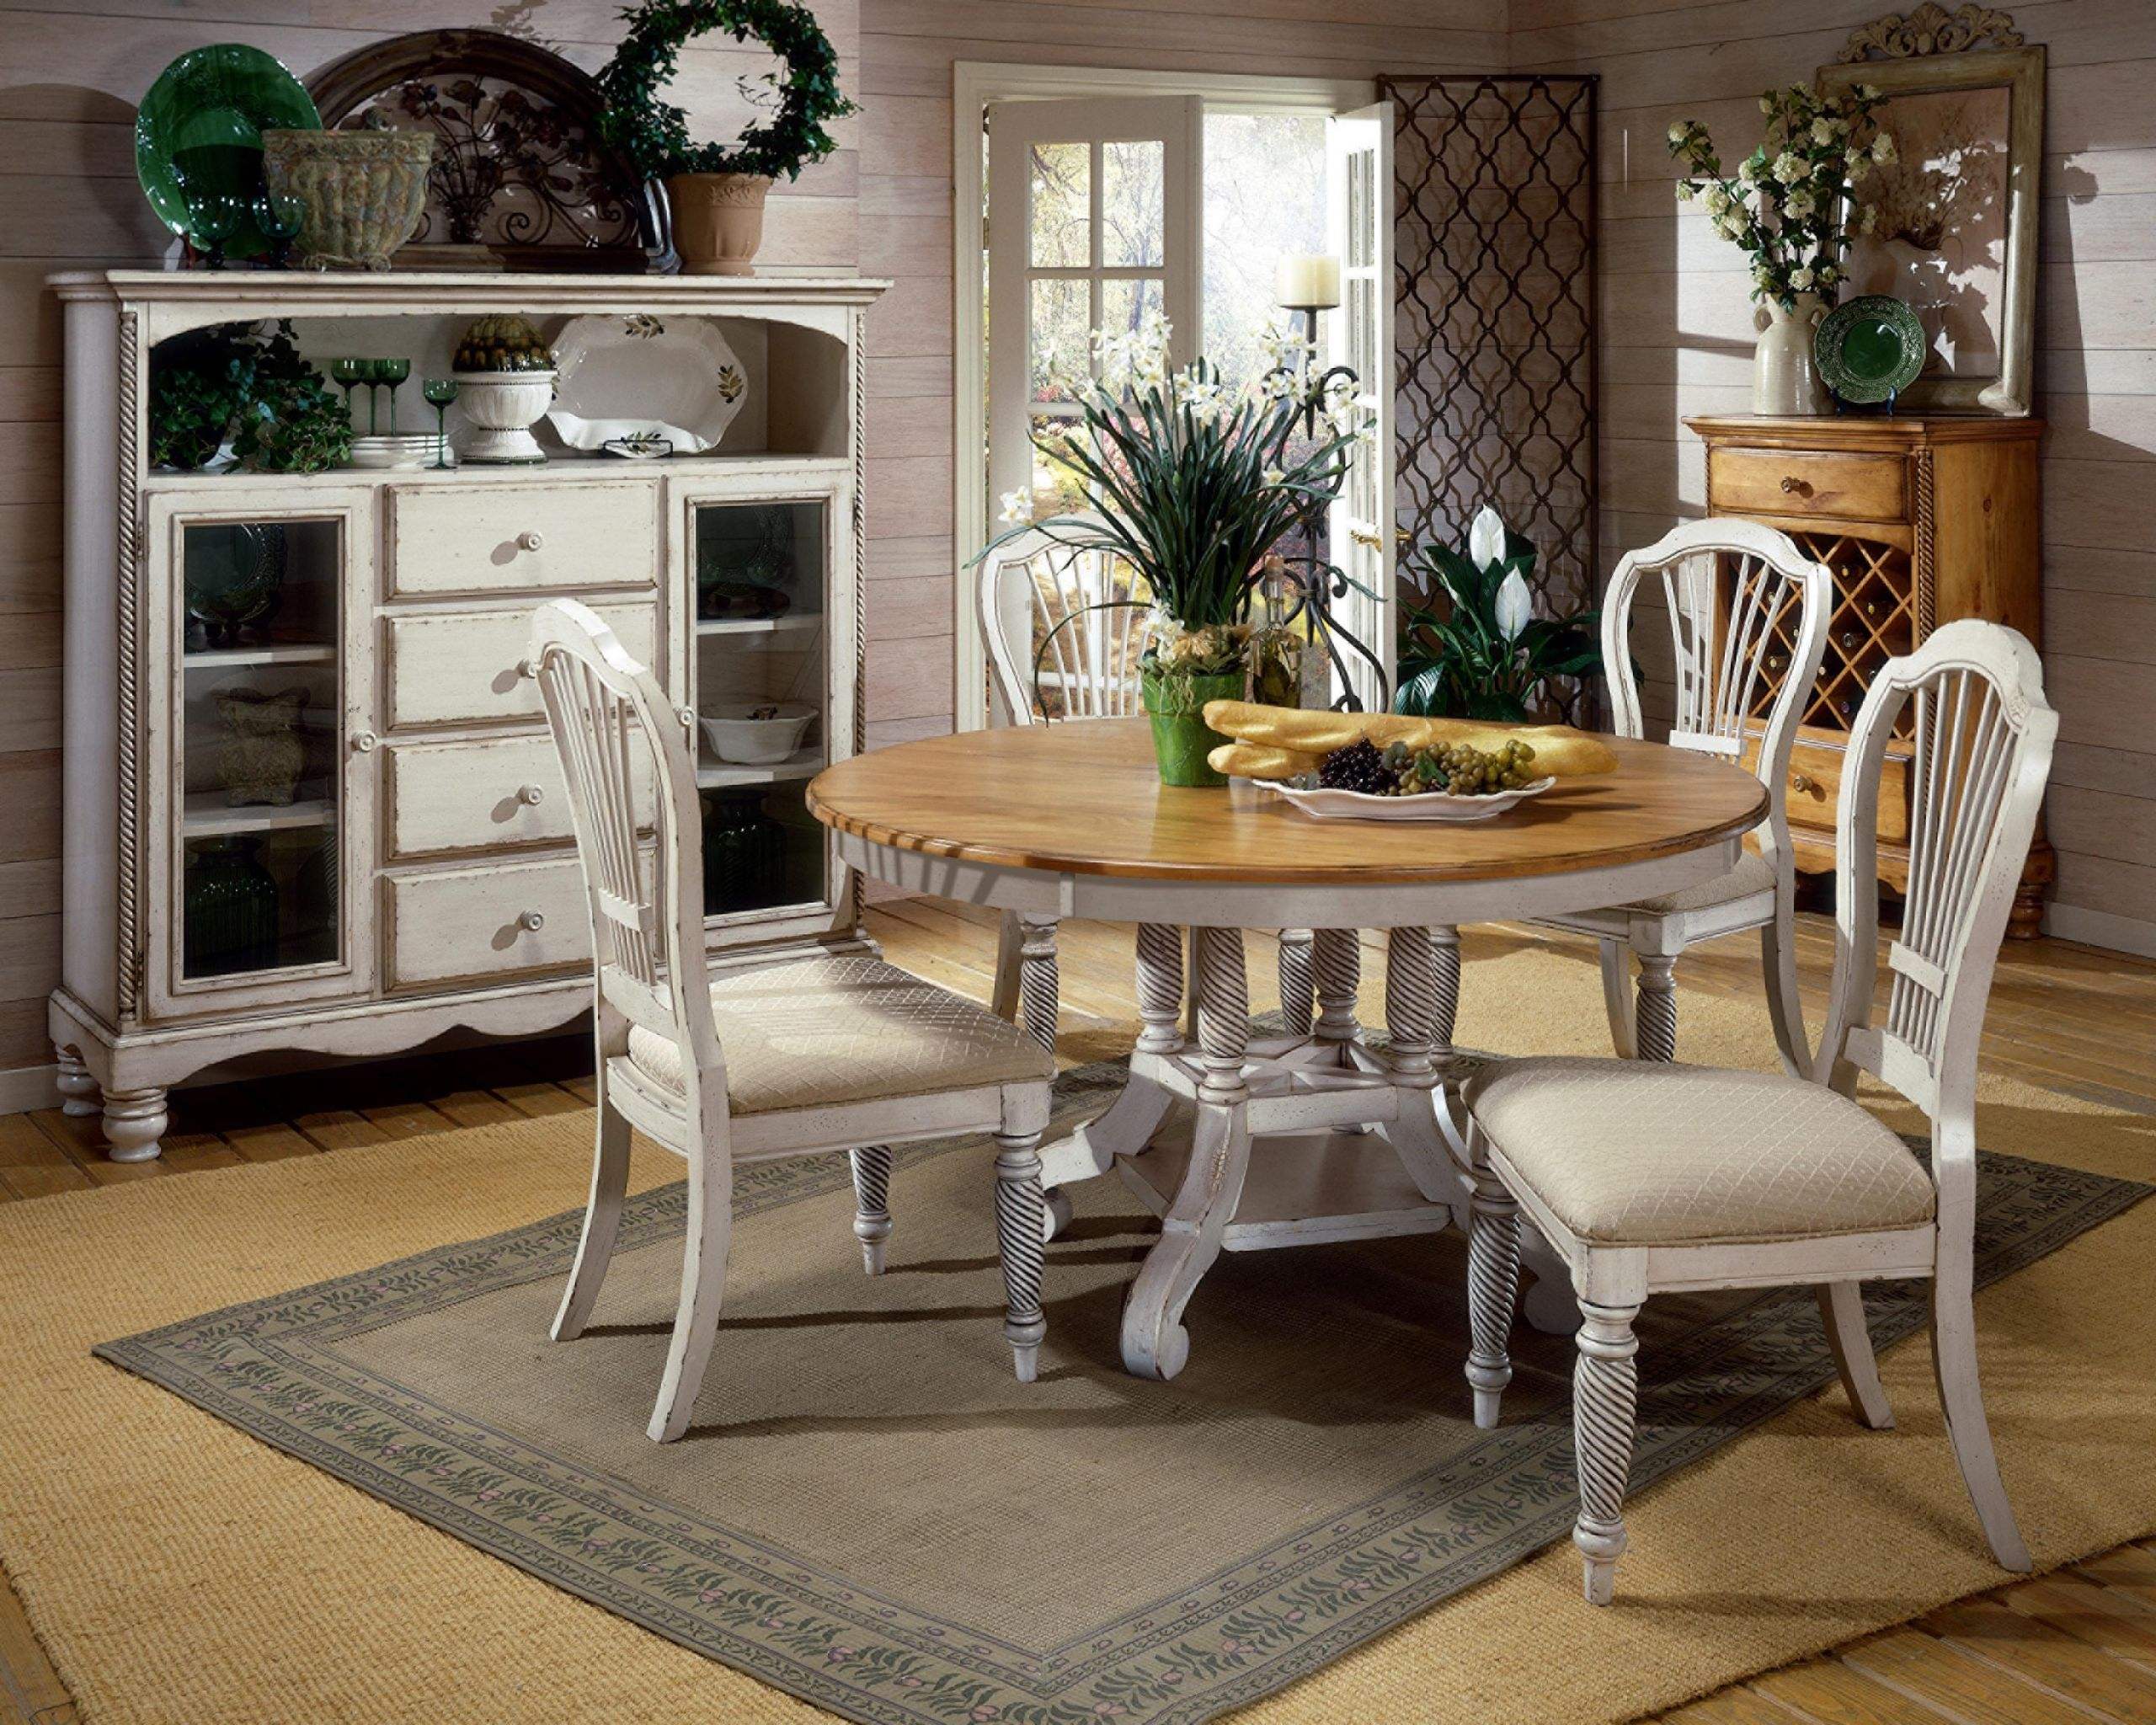 White Kitchen Bench  Beautiful White Round Kitchen Table and Chairs – HomesFeed